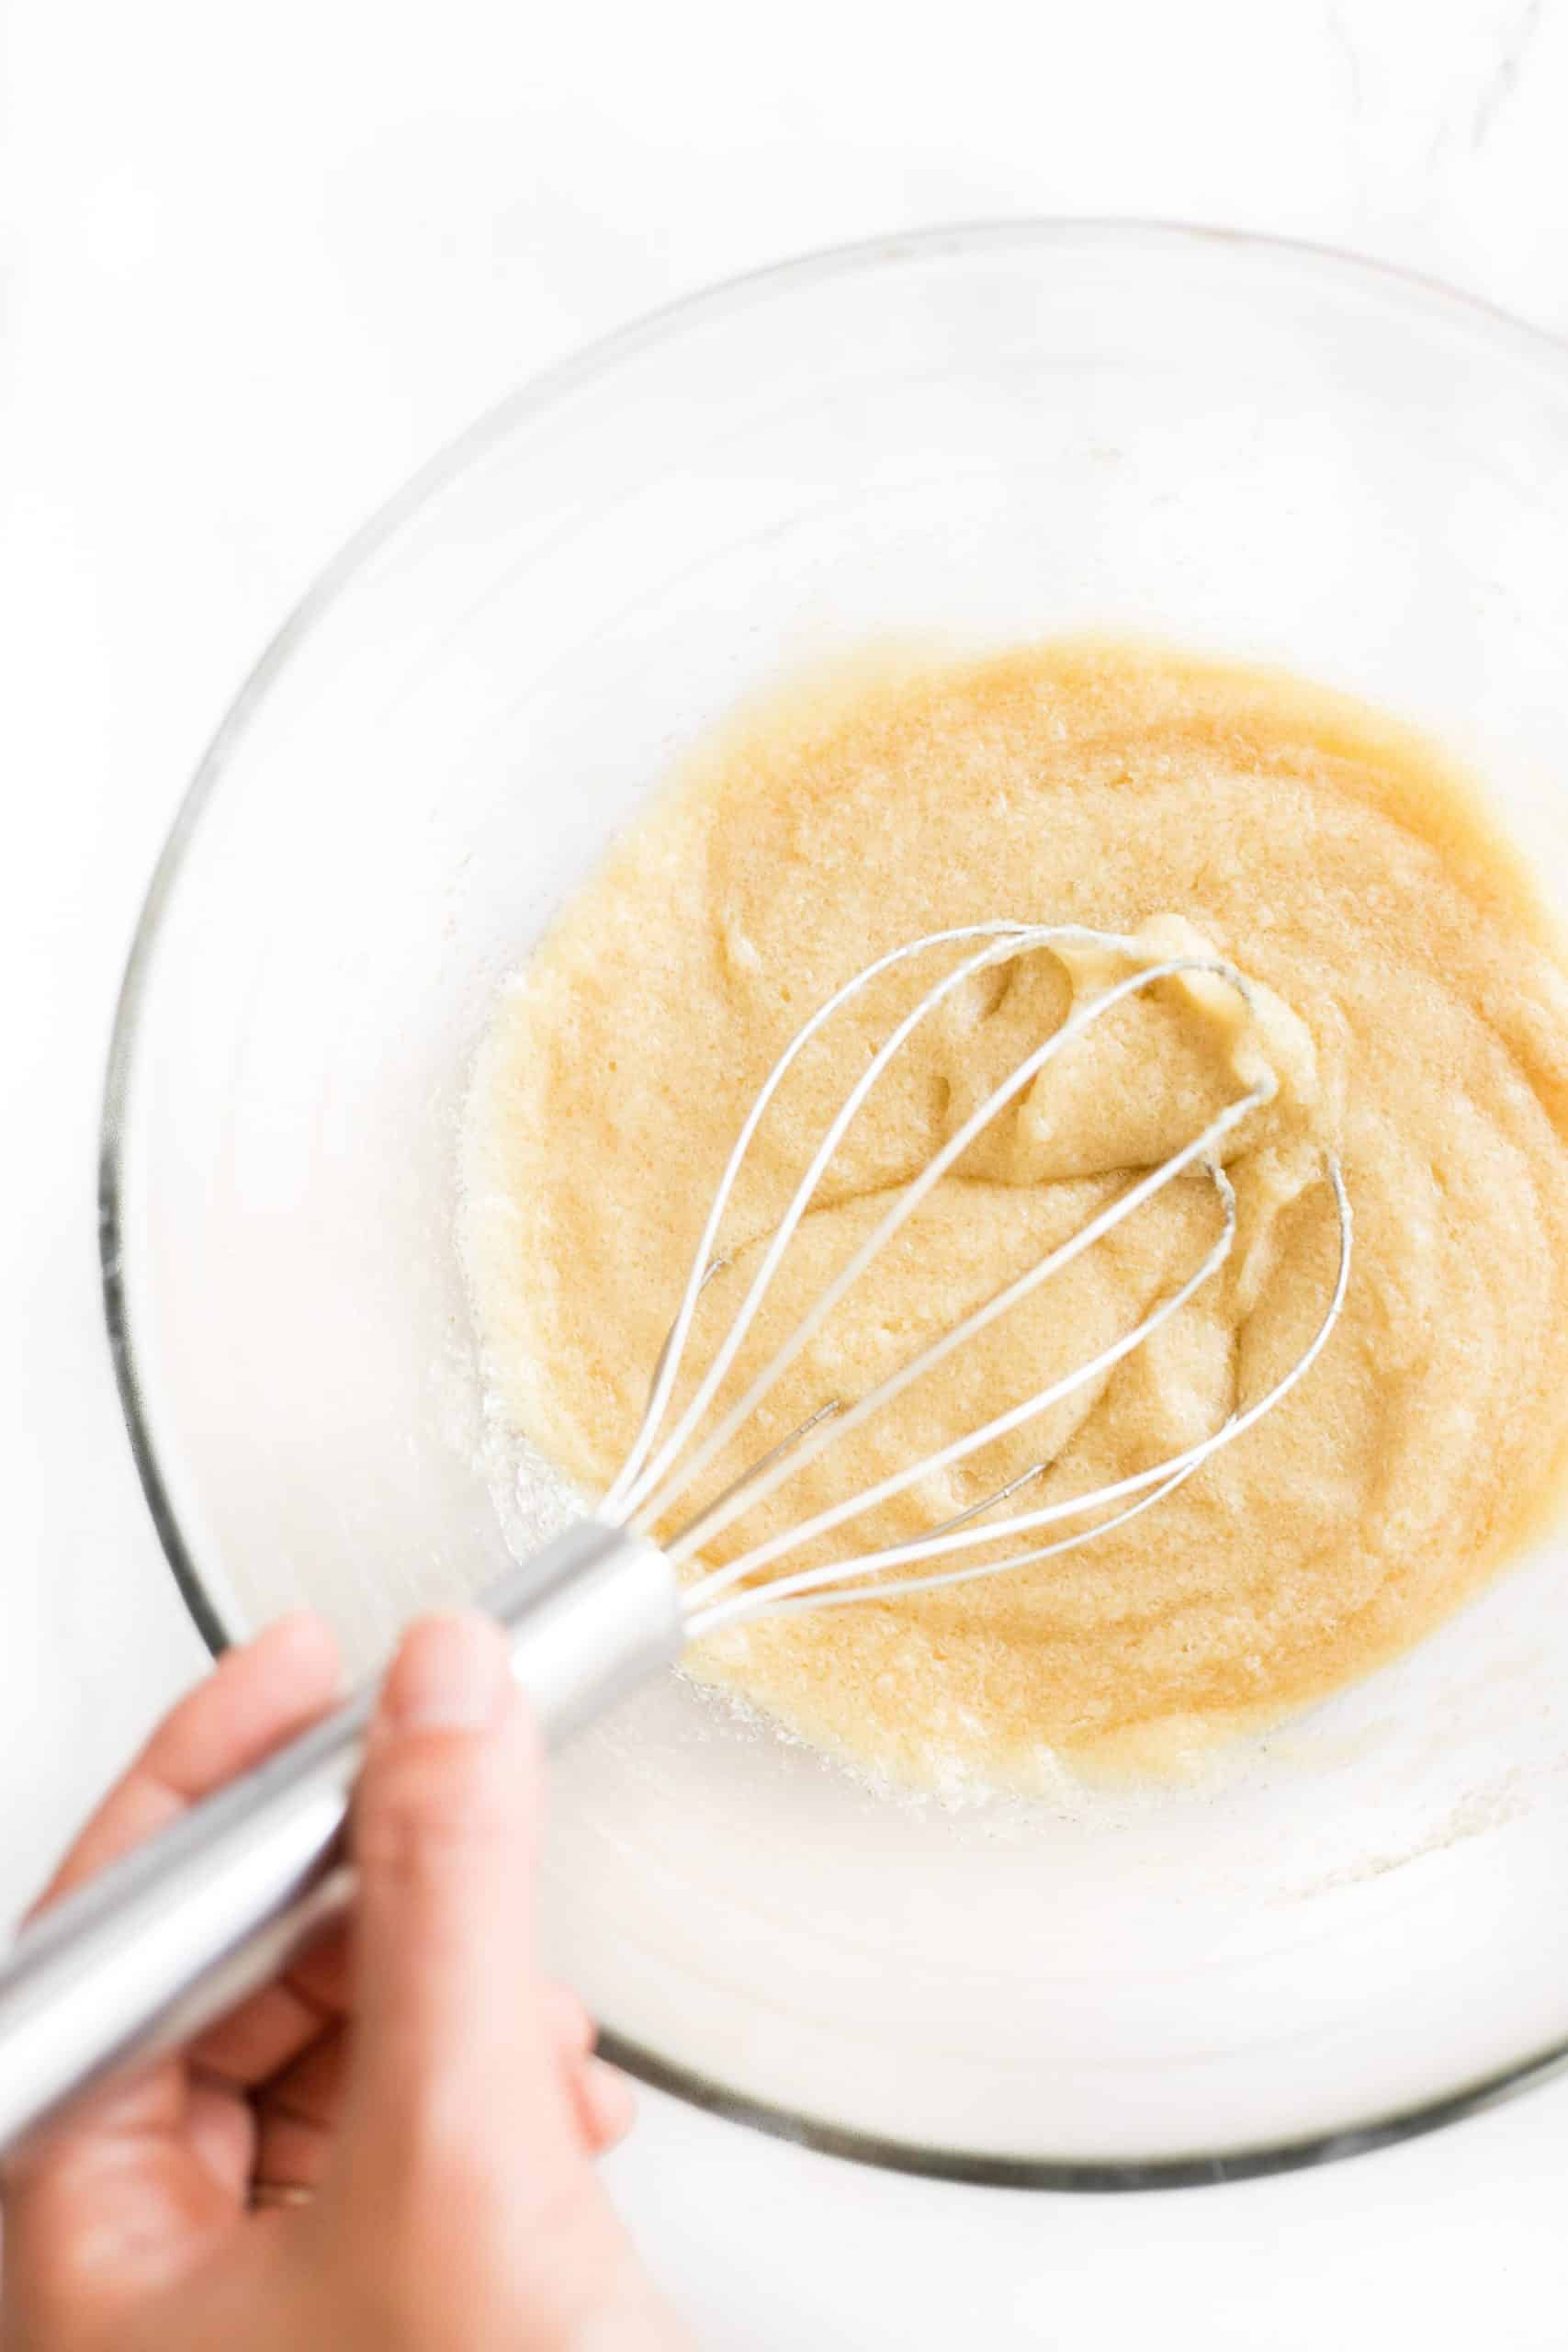 Whisking a batter in the bowl.